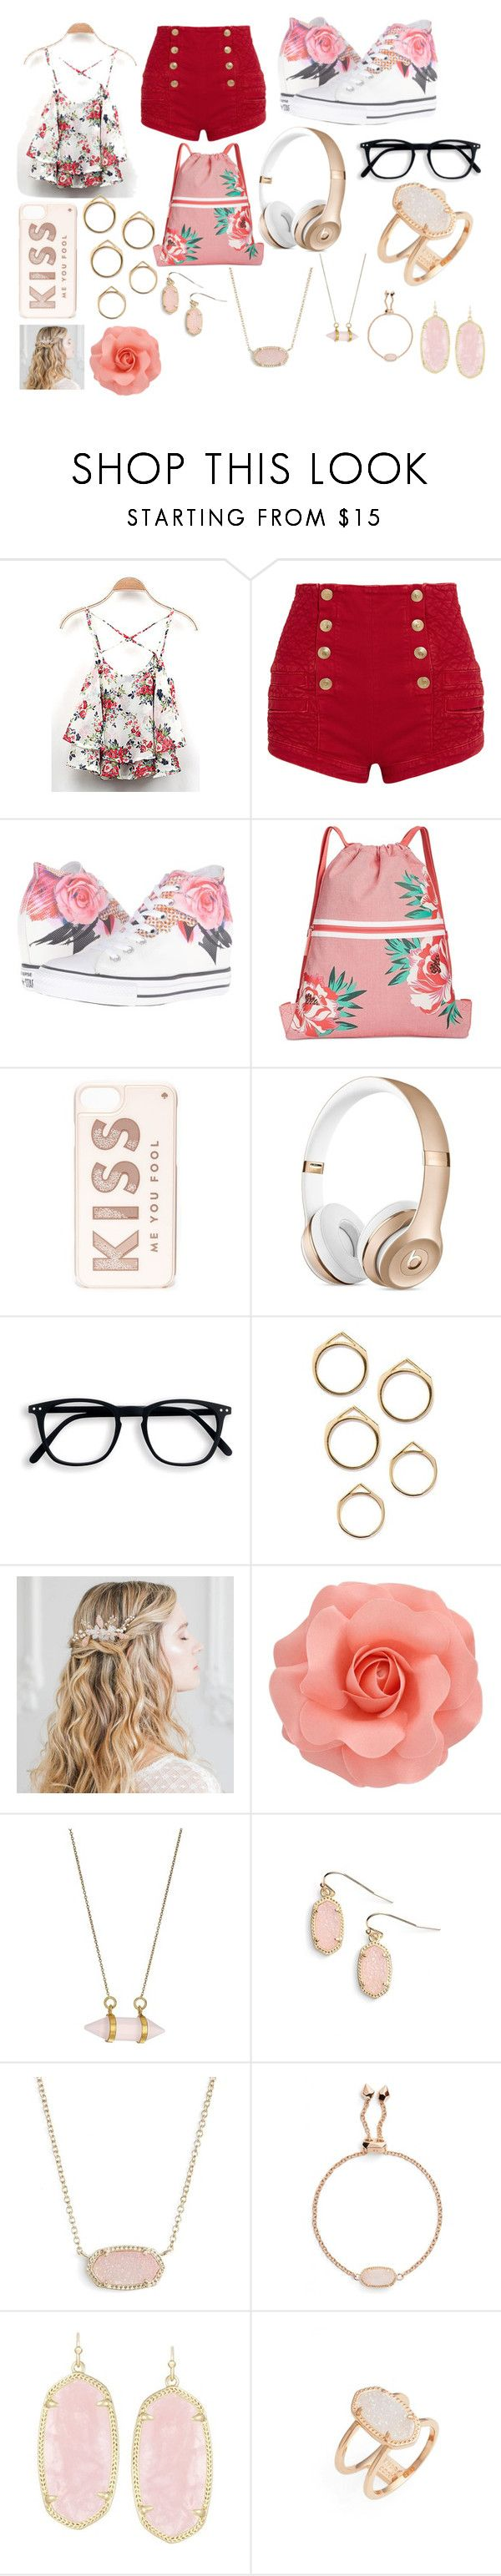 """HAPPY VALENTINES DAY!!!"" by mintmadness4lyfe ❤ liked on Polyvore featuring Pierre Balmain, Converse, Vera Bradley, Kate Spade, Dee Berkley and Kendra Scott"